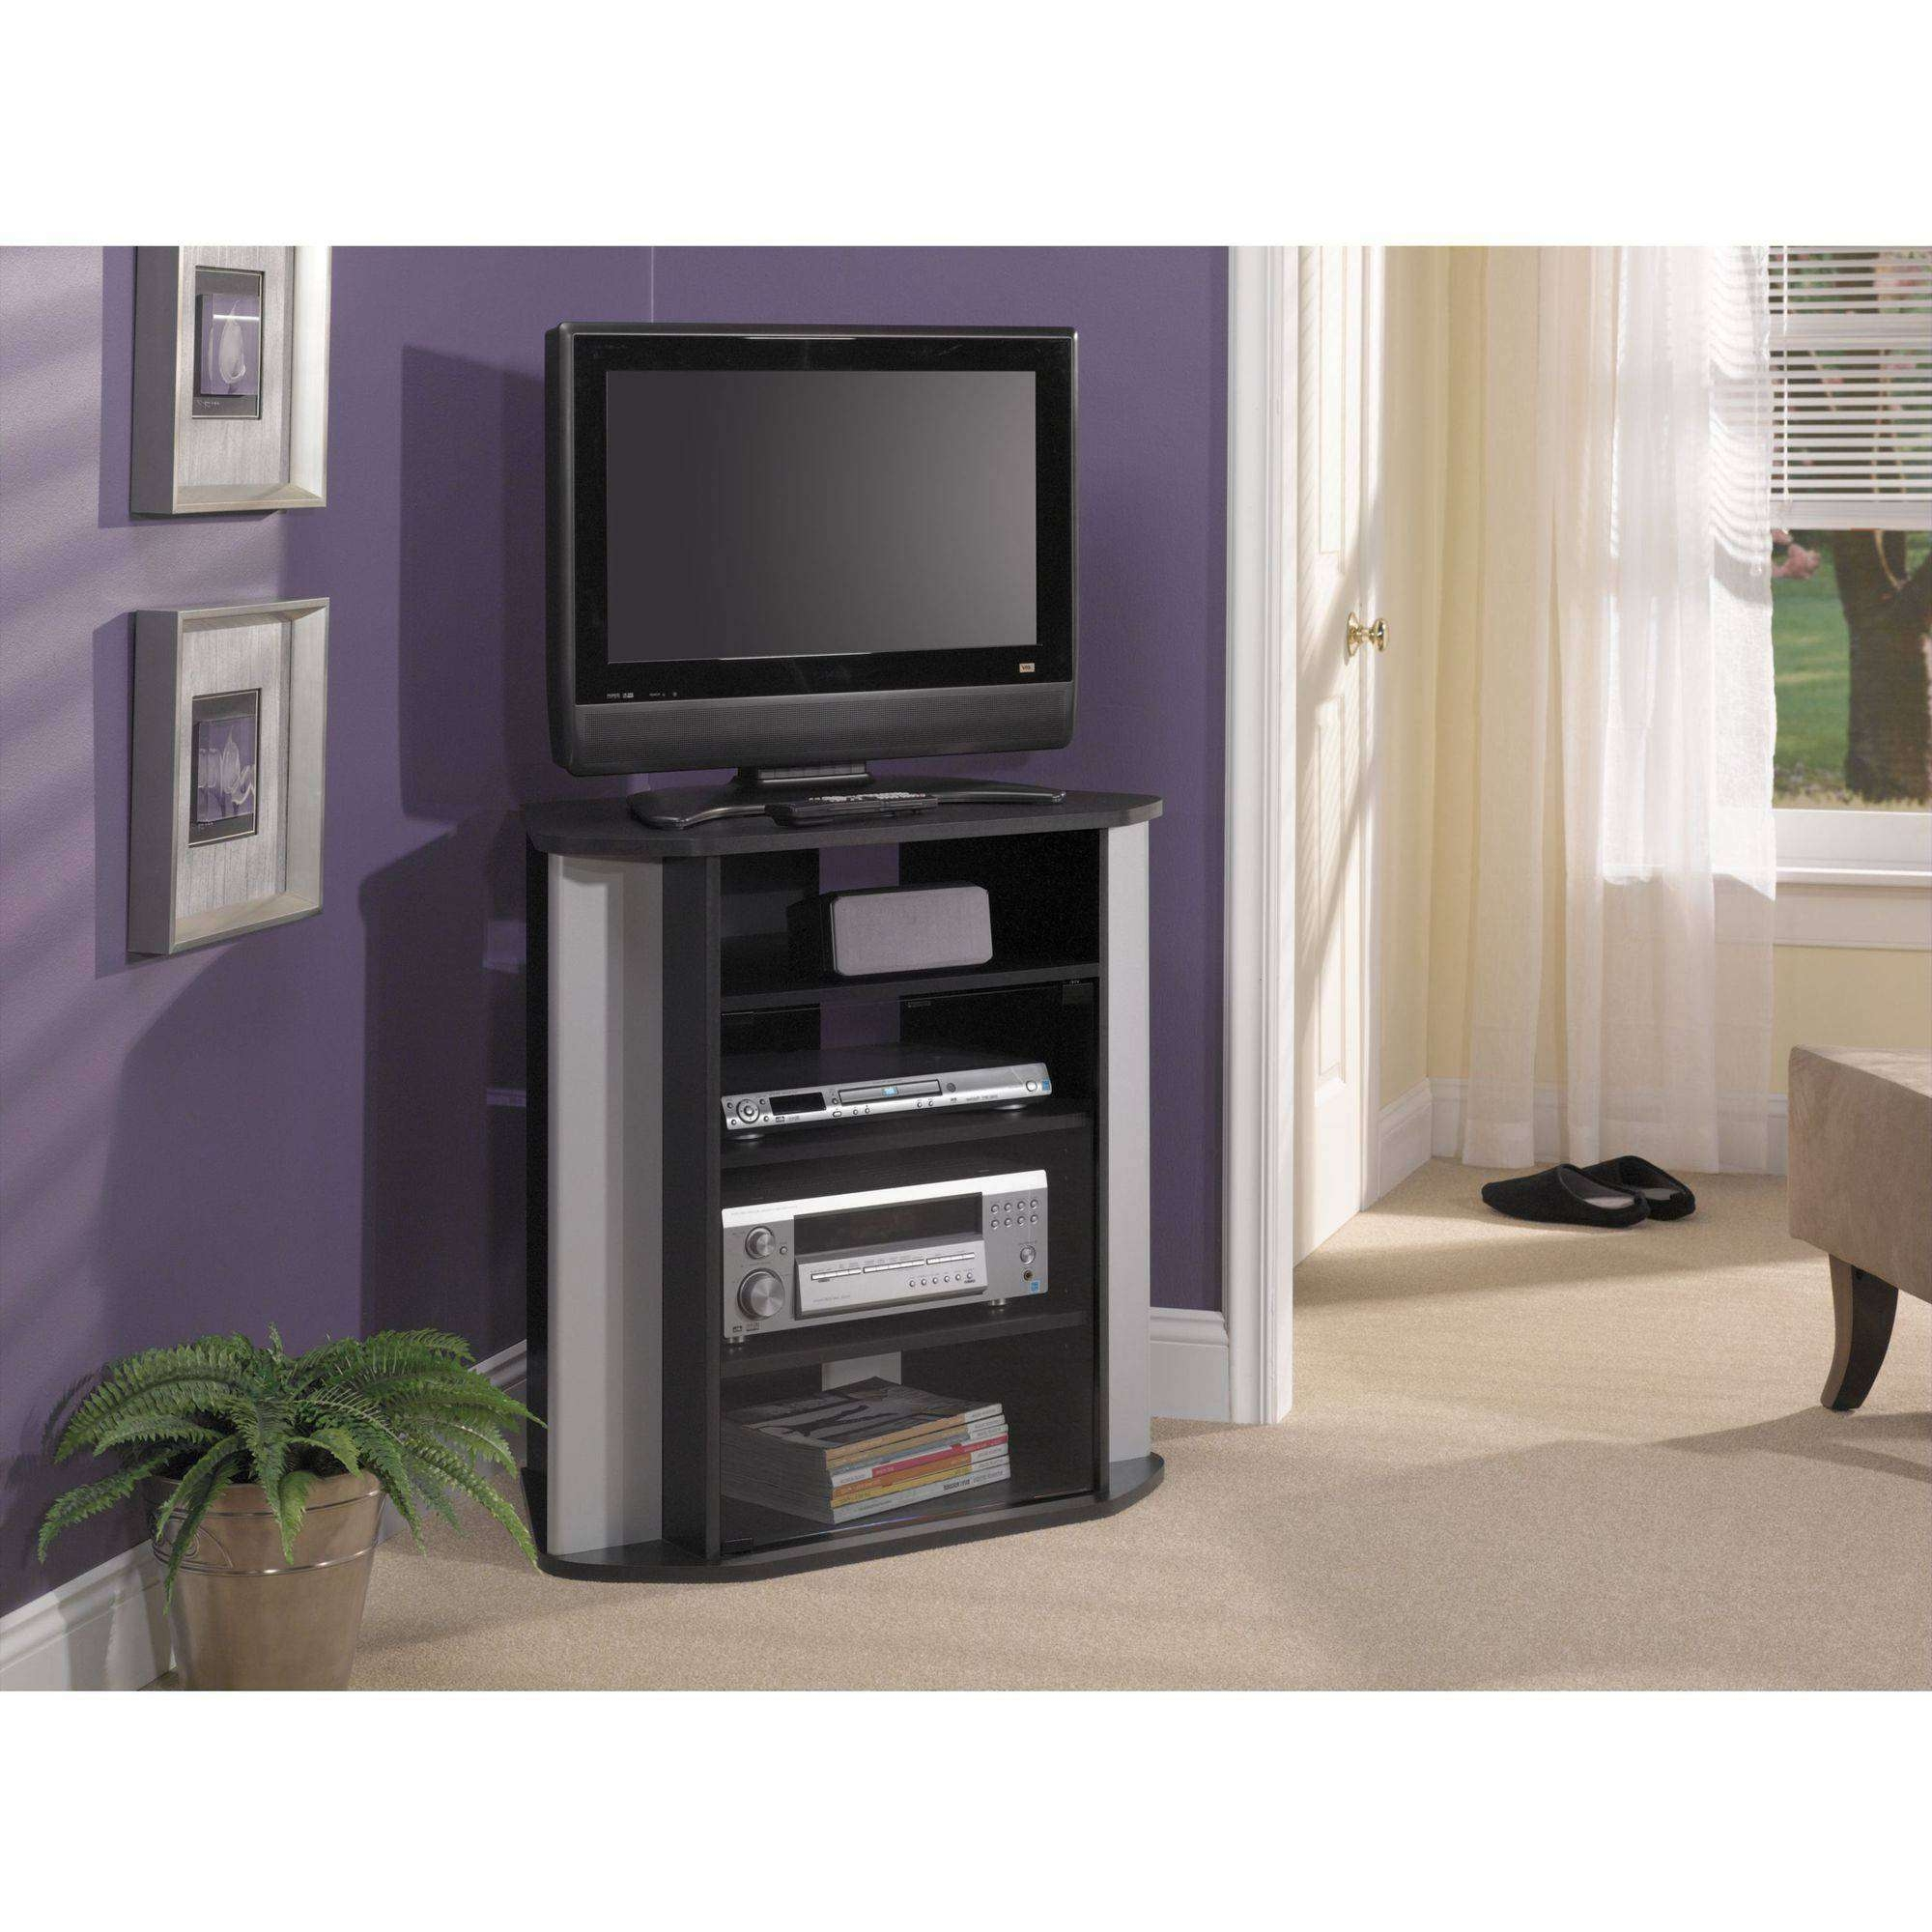 Bush Visions Black Tall Corner Tv Stand, For Tvs Up To 37 Regarding White Small Corner Tv Stands (View 2 of 15)